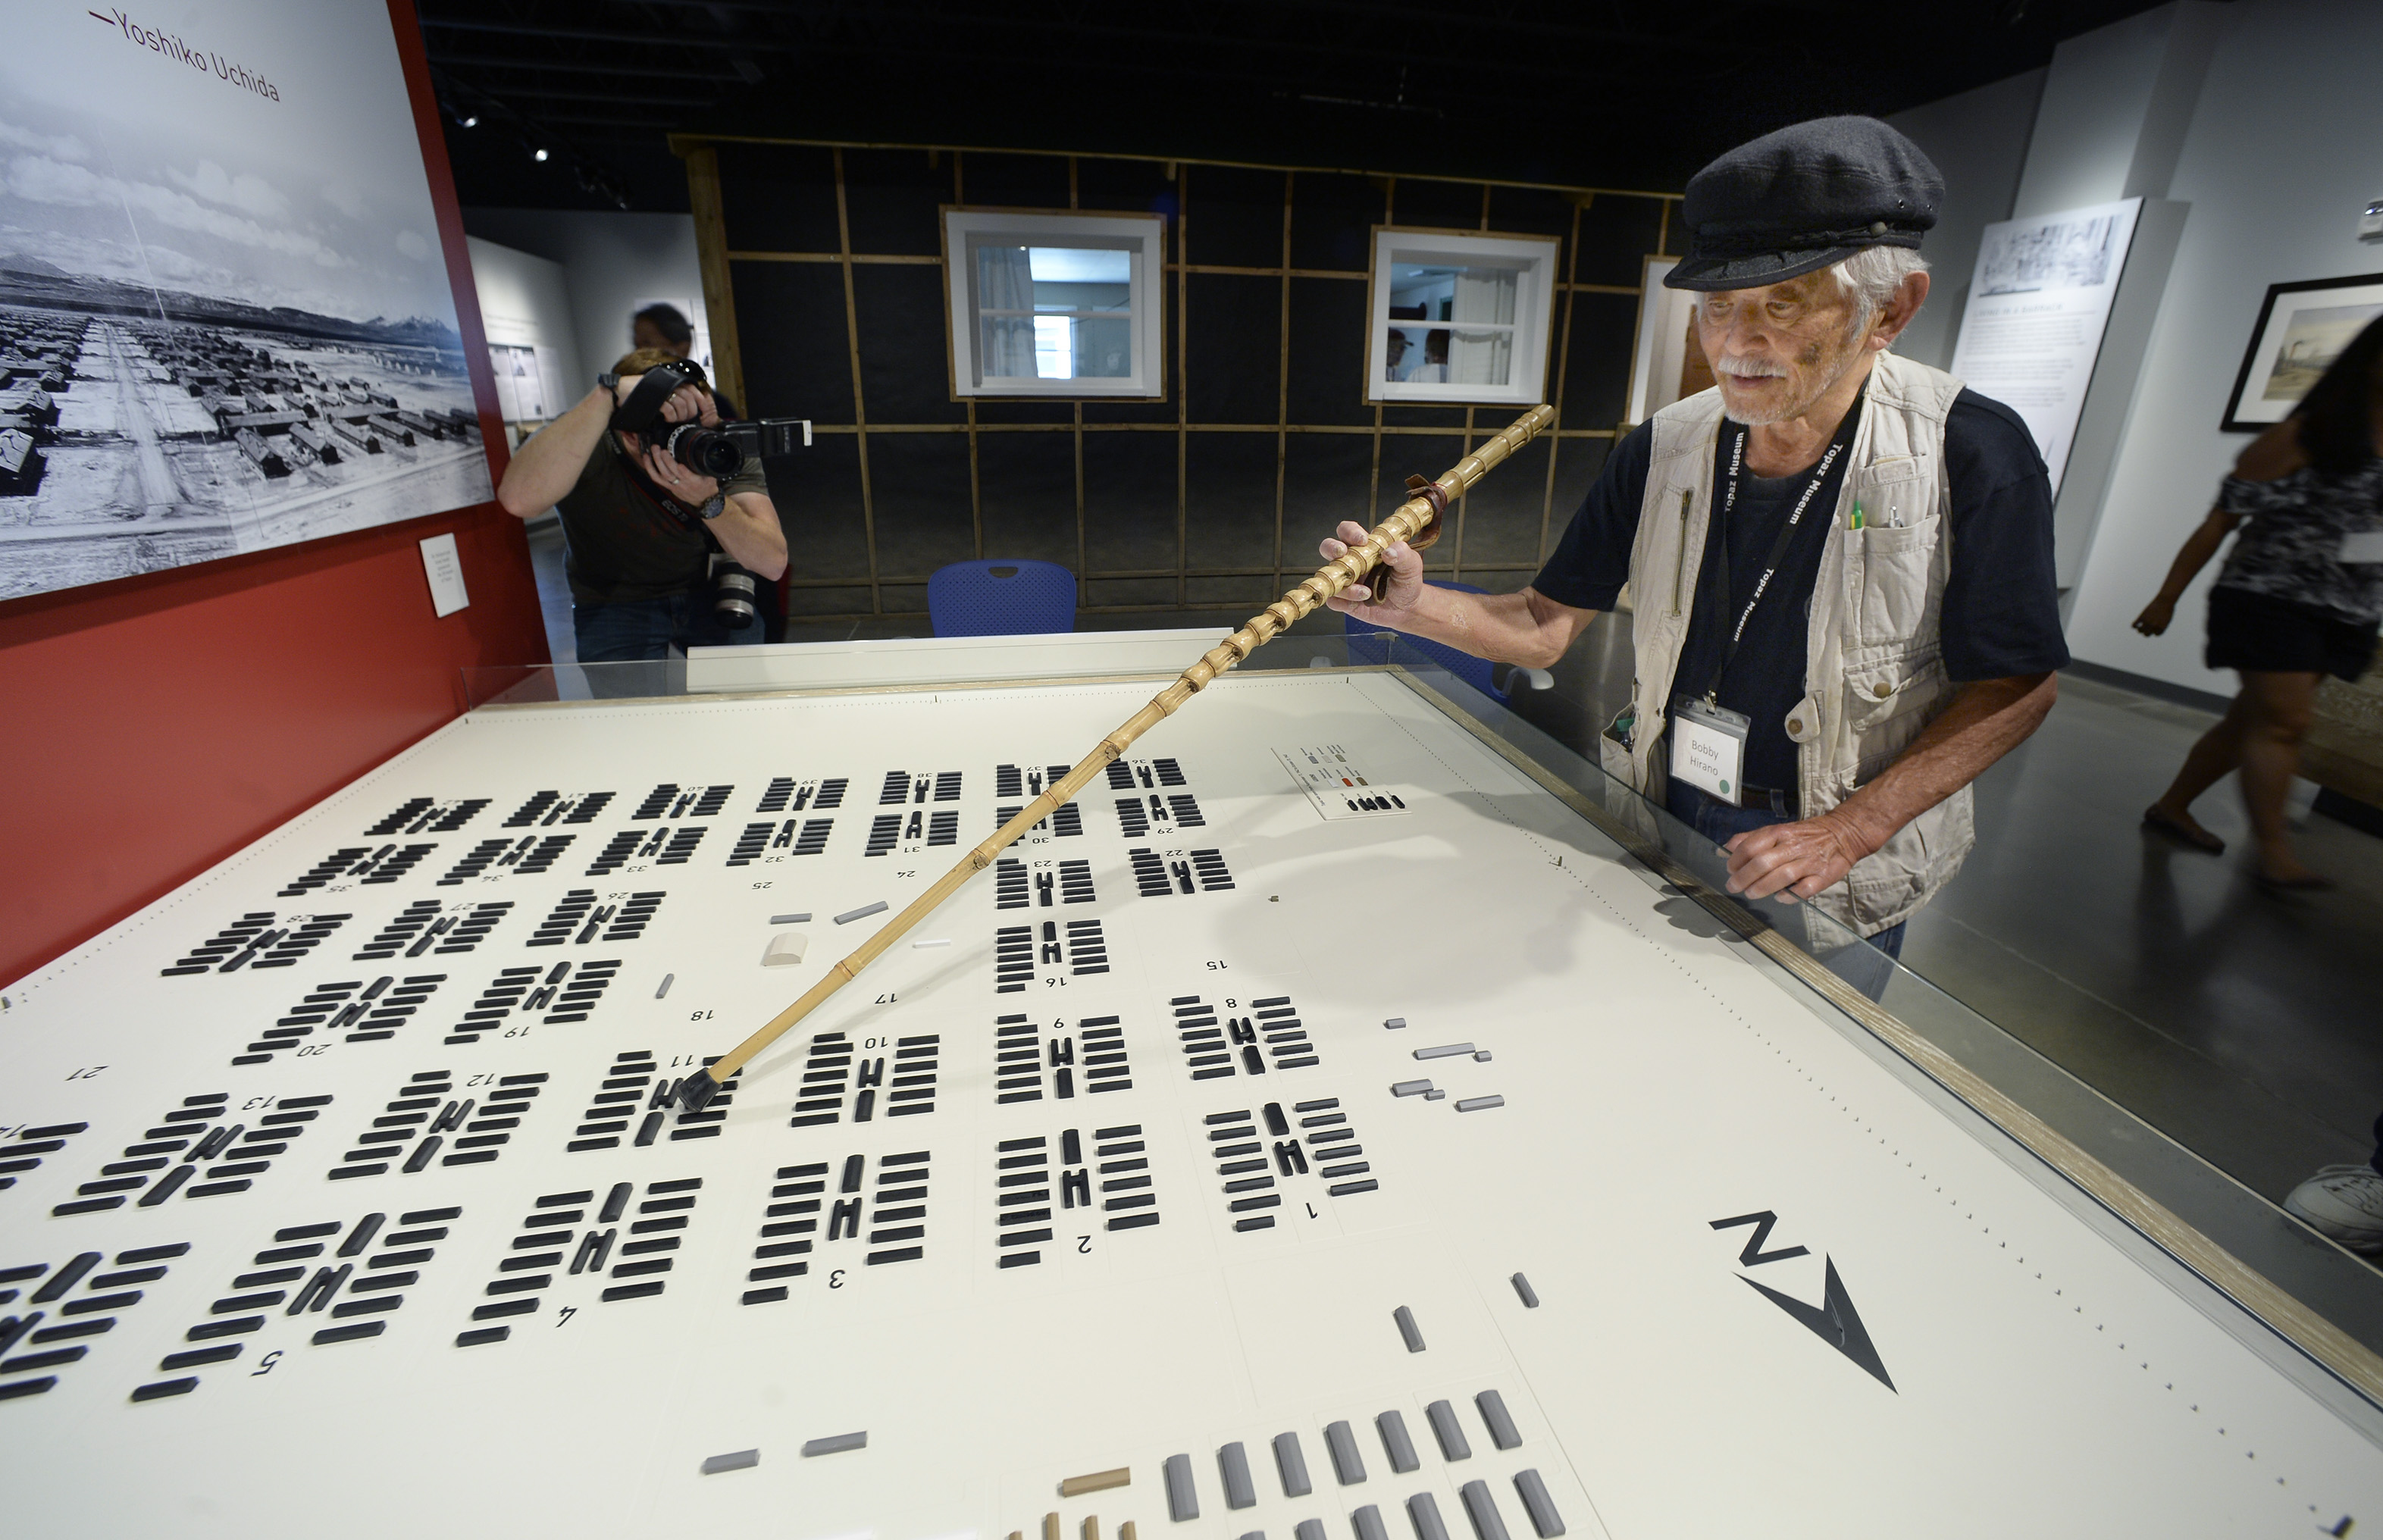 (Scott Sommerdorf   |  The Salt Lake Tribune)  83-year-old Bobby Hirano, who lived in the Topaz Internment Camp as a 10-year-old boy, uses his cane to point at the barrack in Block 11 during the grand opening of the Topaz Museum in Delta, Saturday, July 8, 2017.